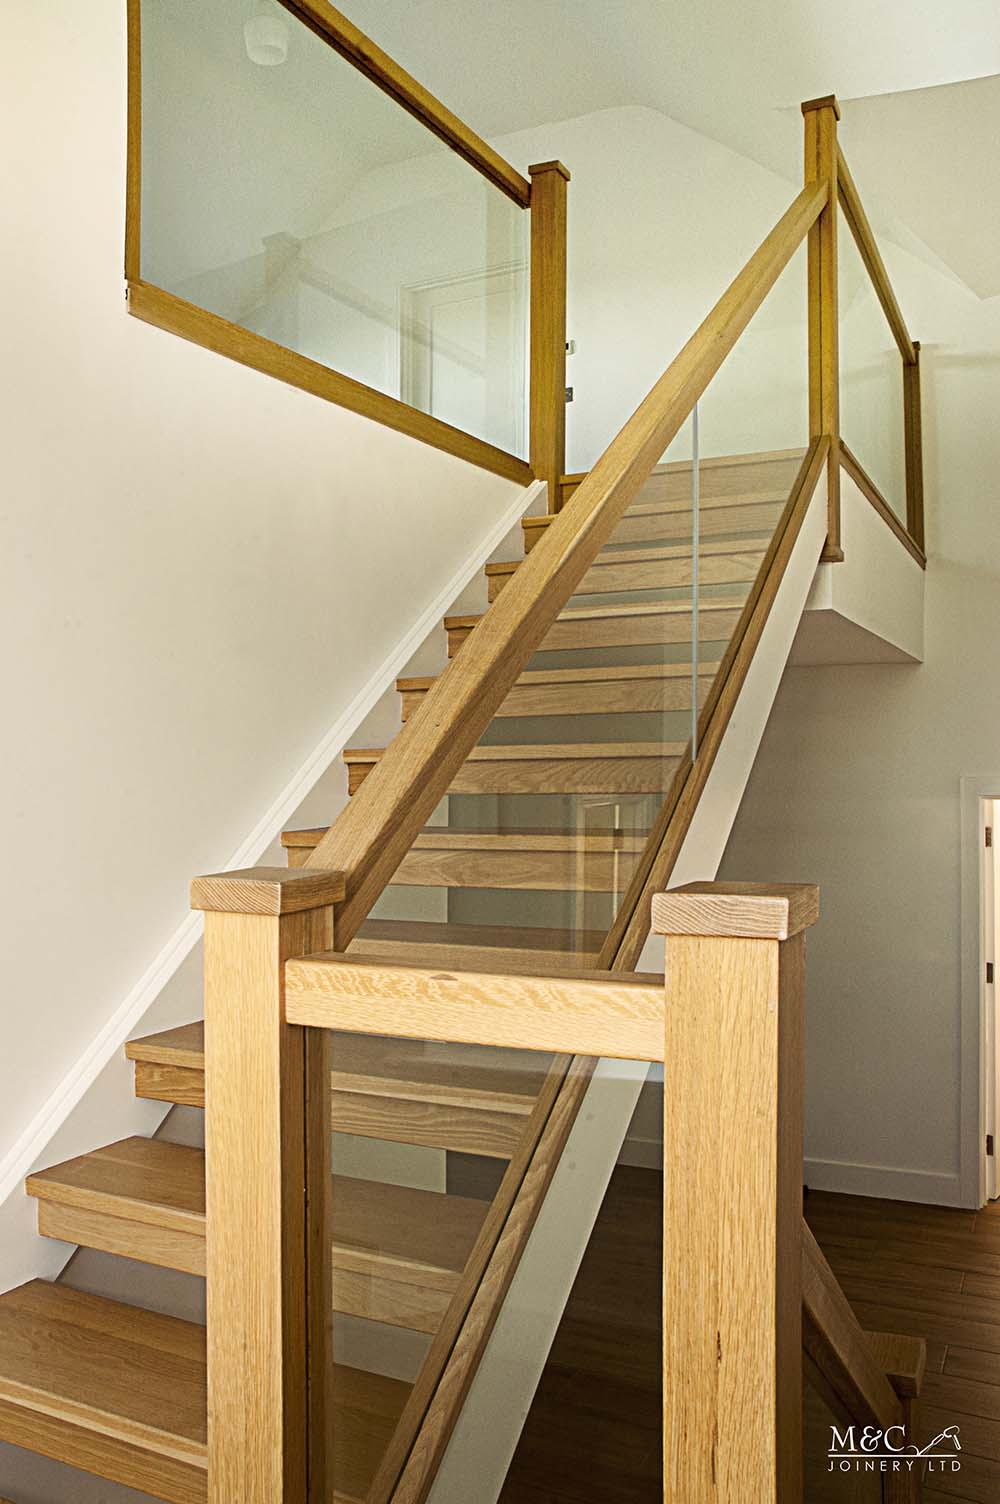 Stairs by M & C Joinery